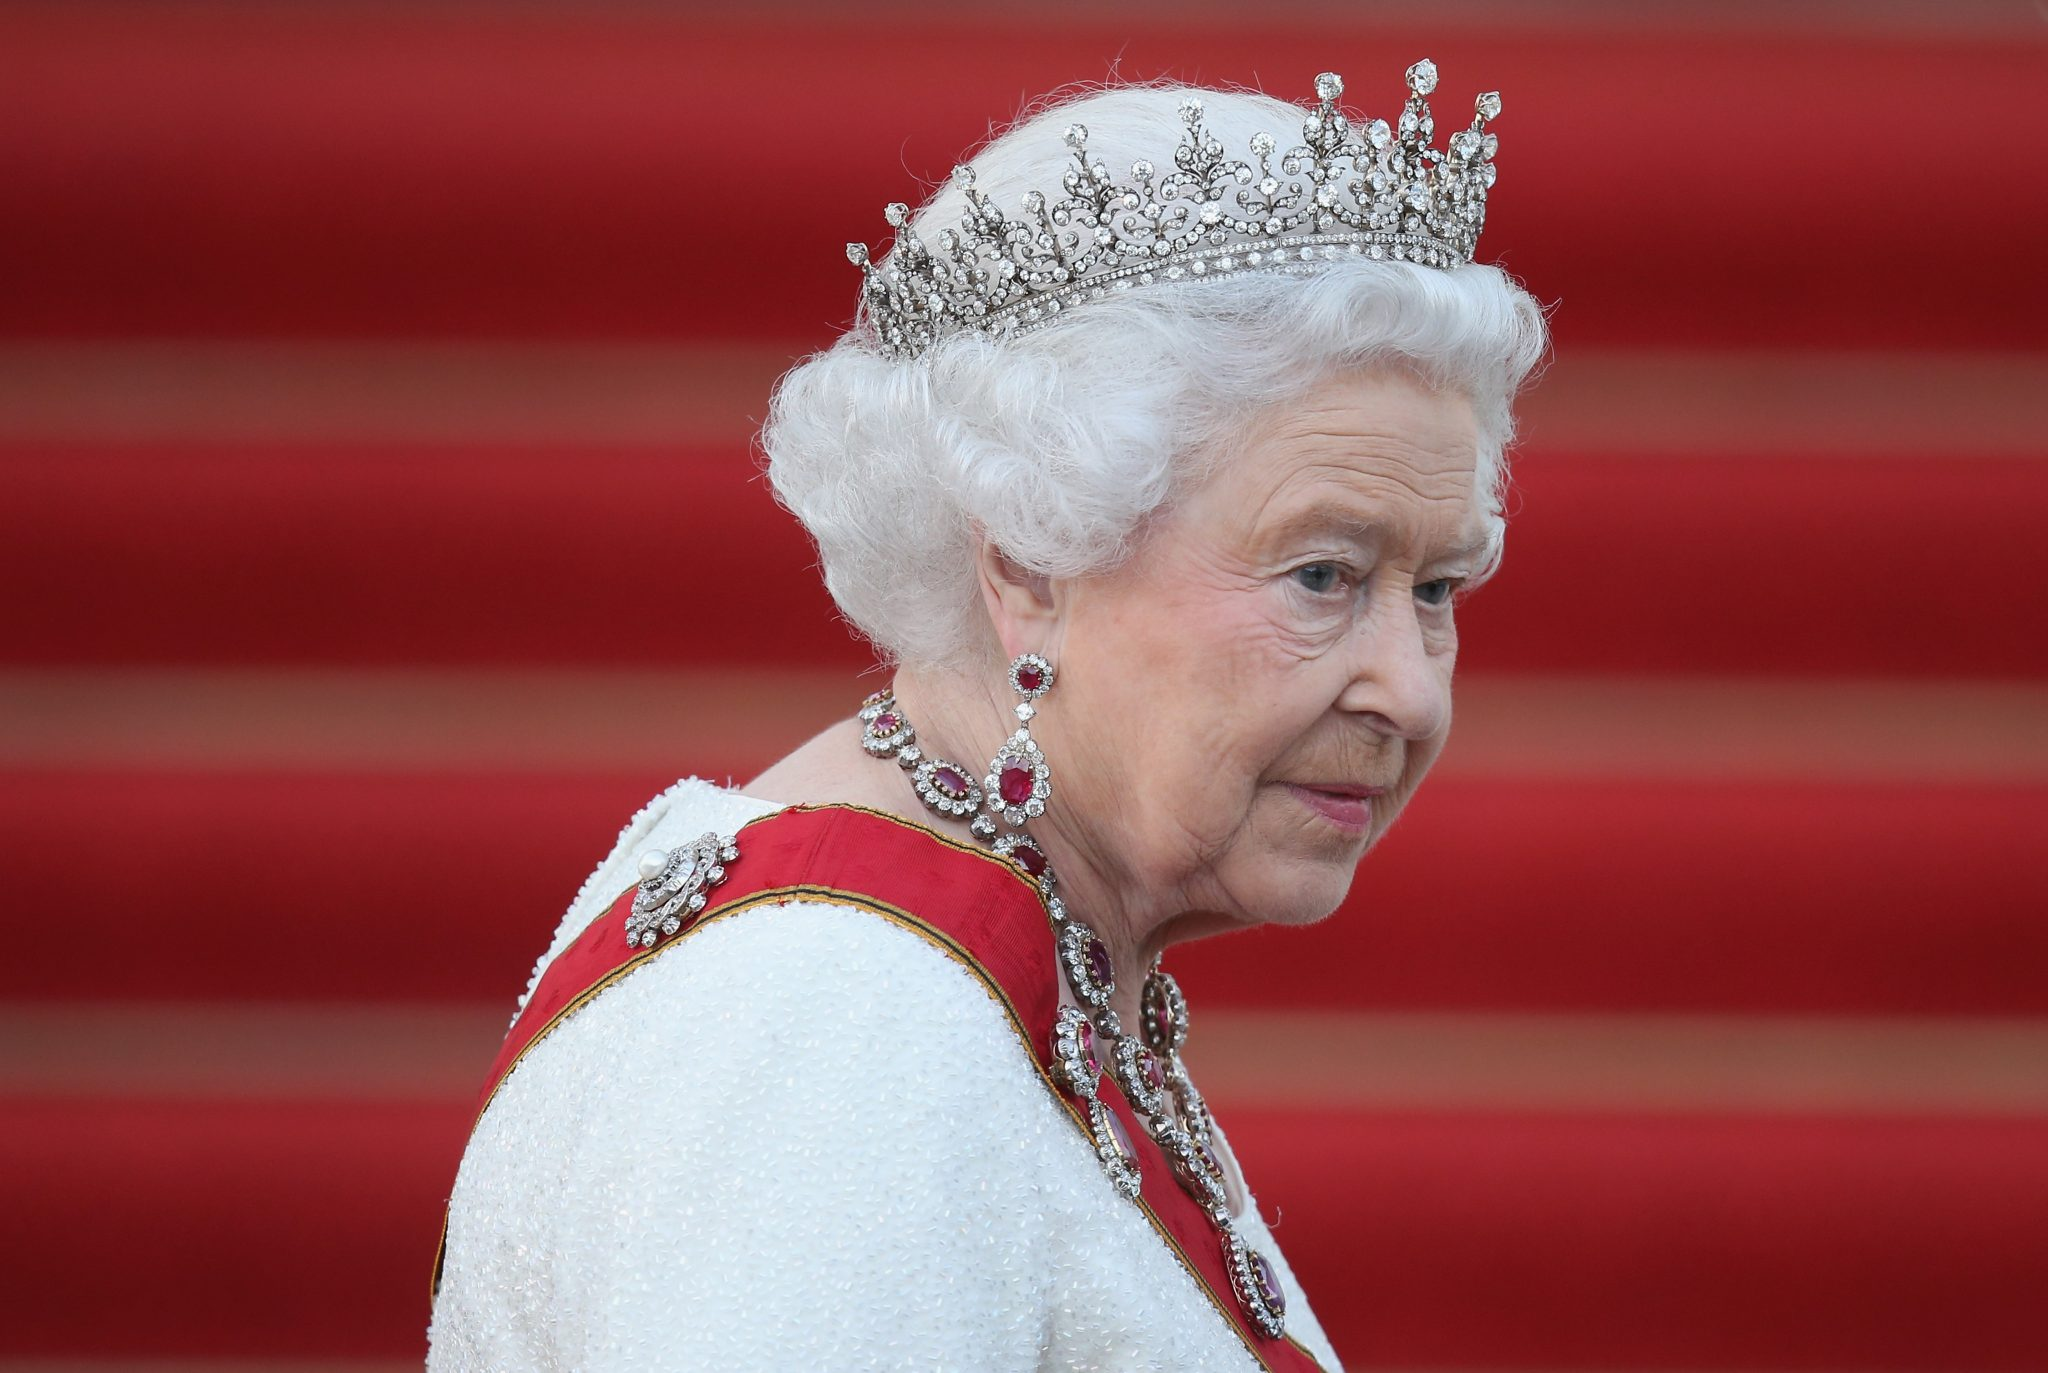 Queen Elizabeth II with a crown on